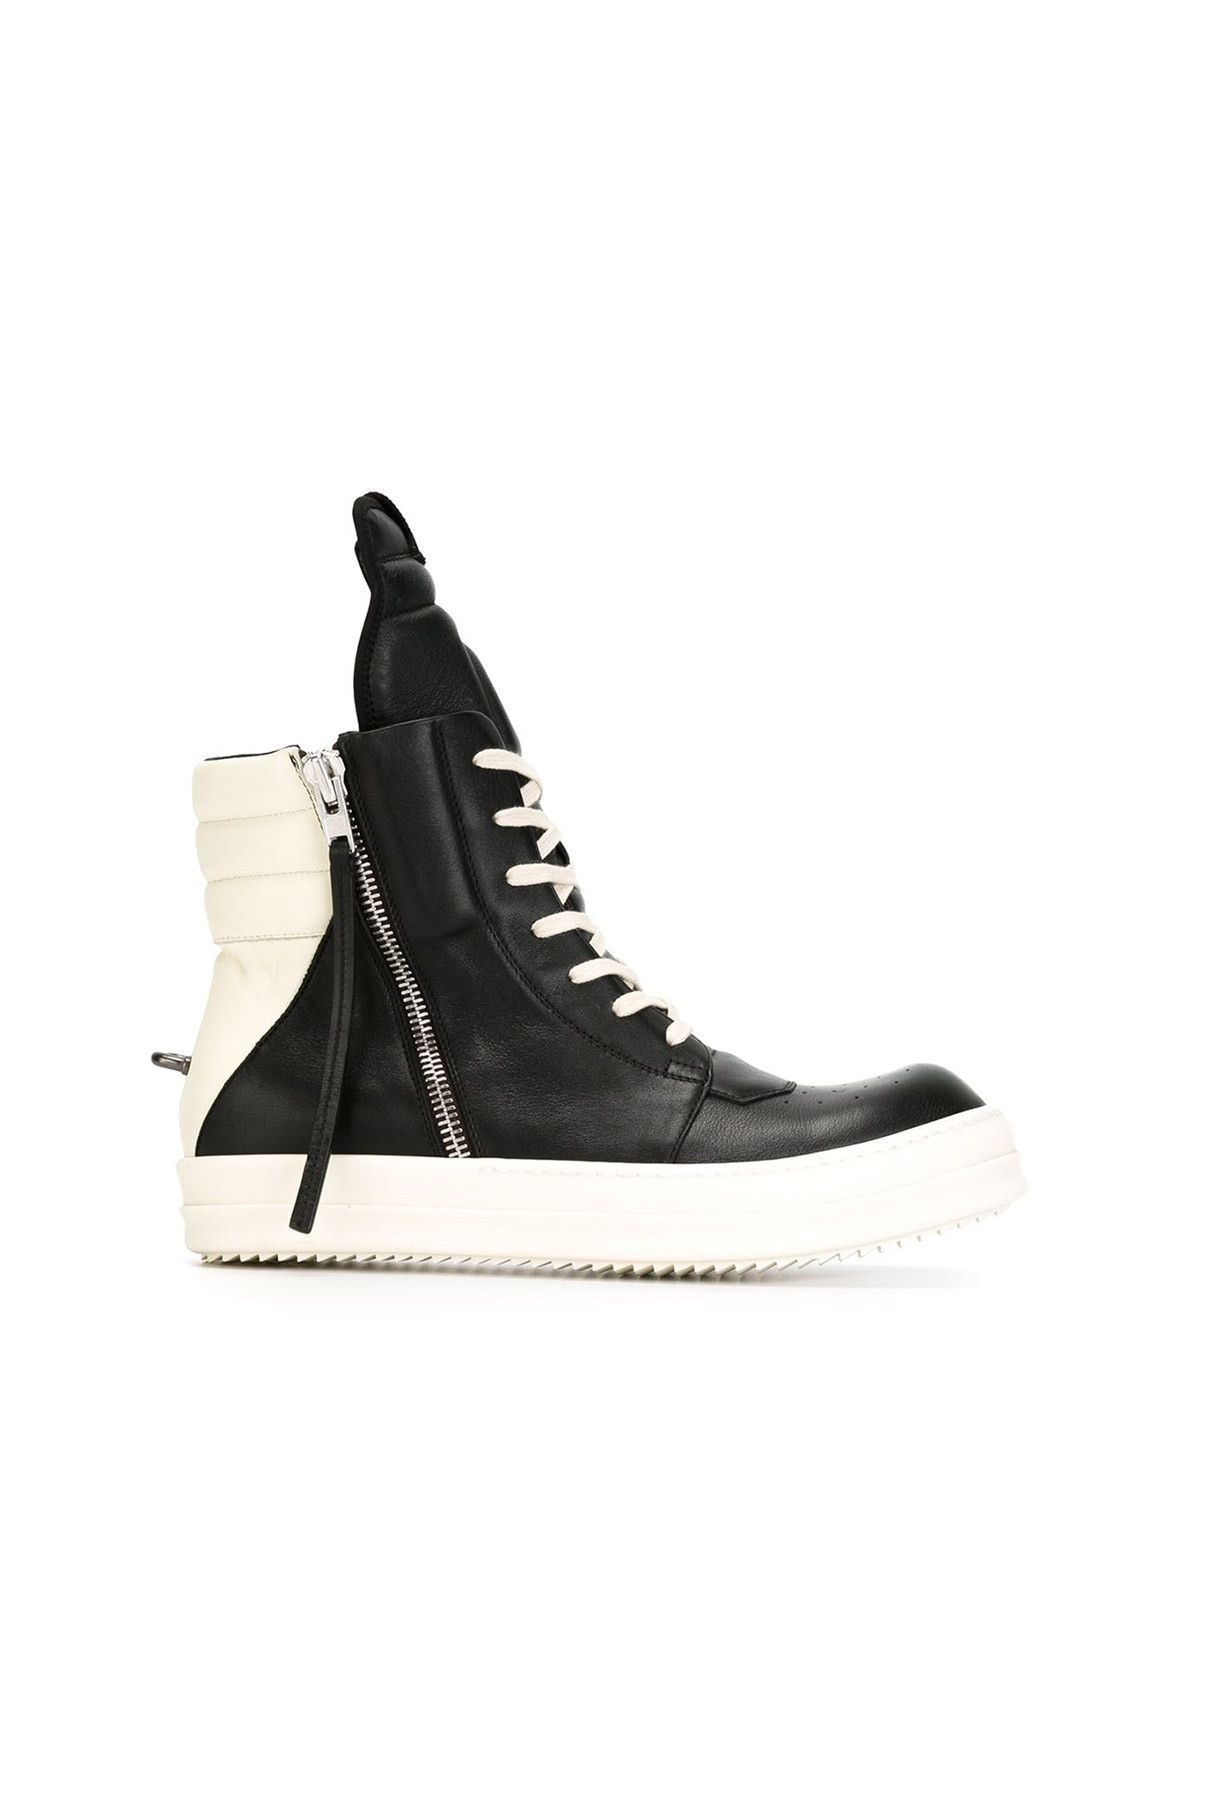 Black calf leather Geobasket hitop sneakers from Rick Owens featuring a  round